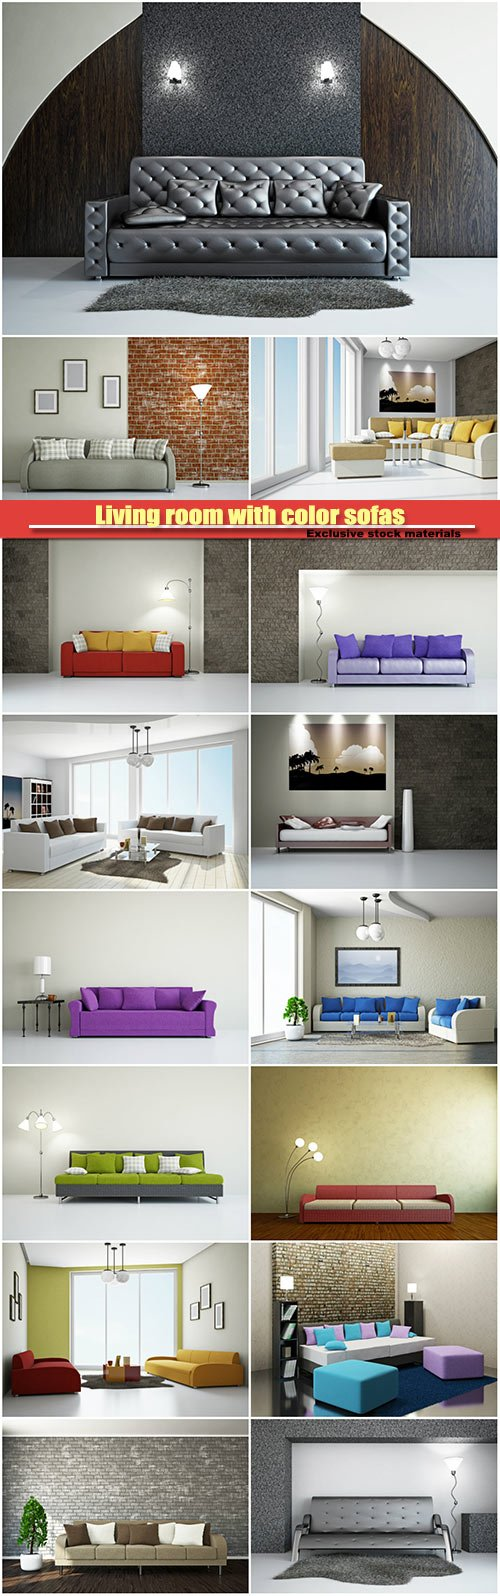 Living room with color sofas